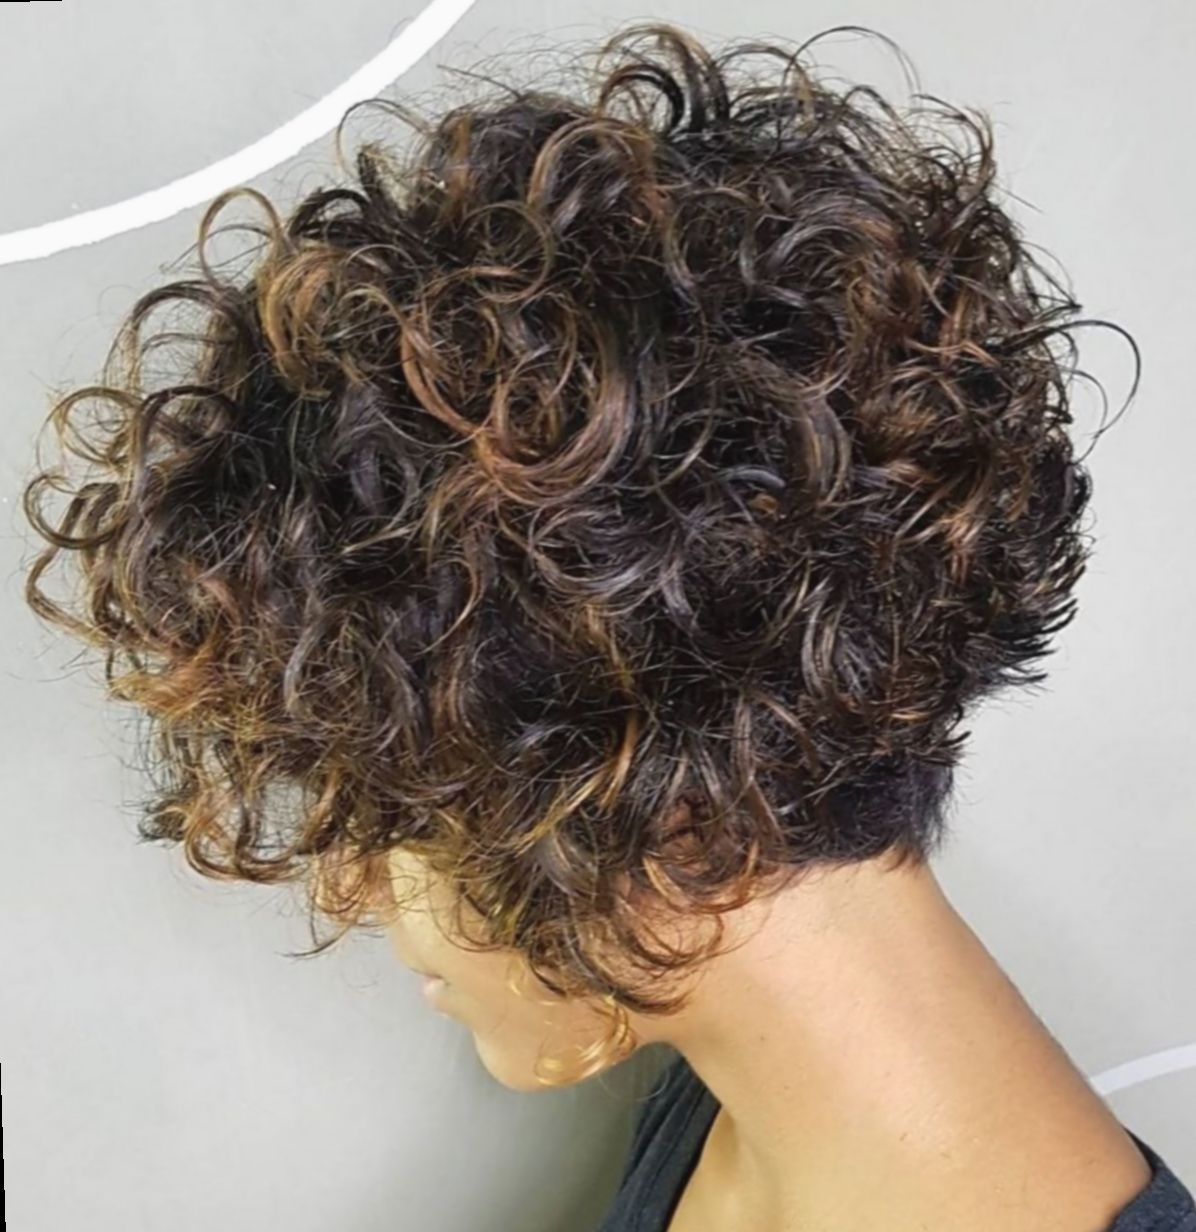 9 Cute Hairstyles Short Naturally Curly Curly Hair Photos Curly Hair Styles Curly Hair Styles Naturally